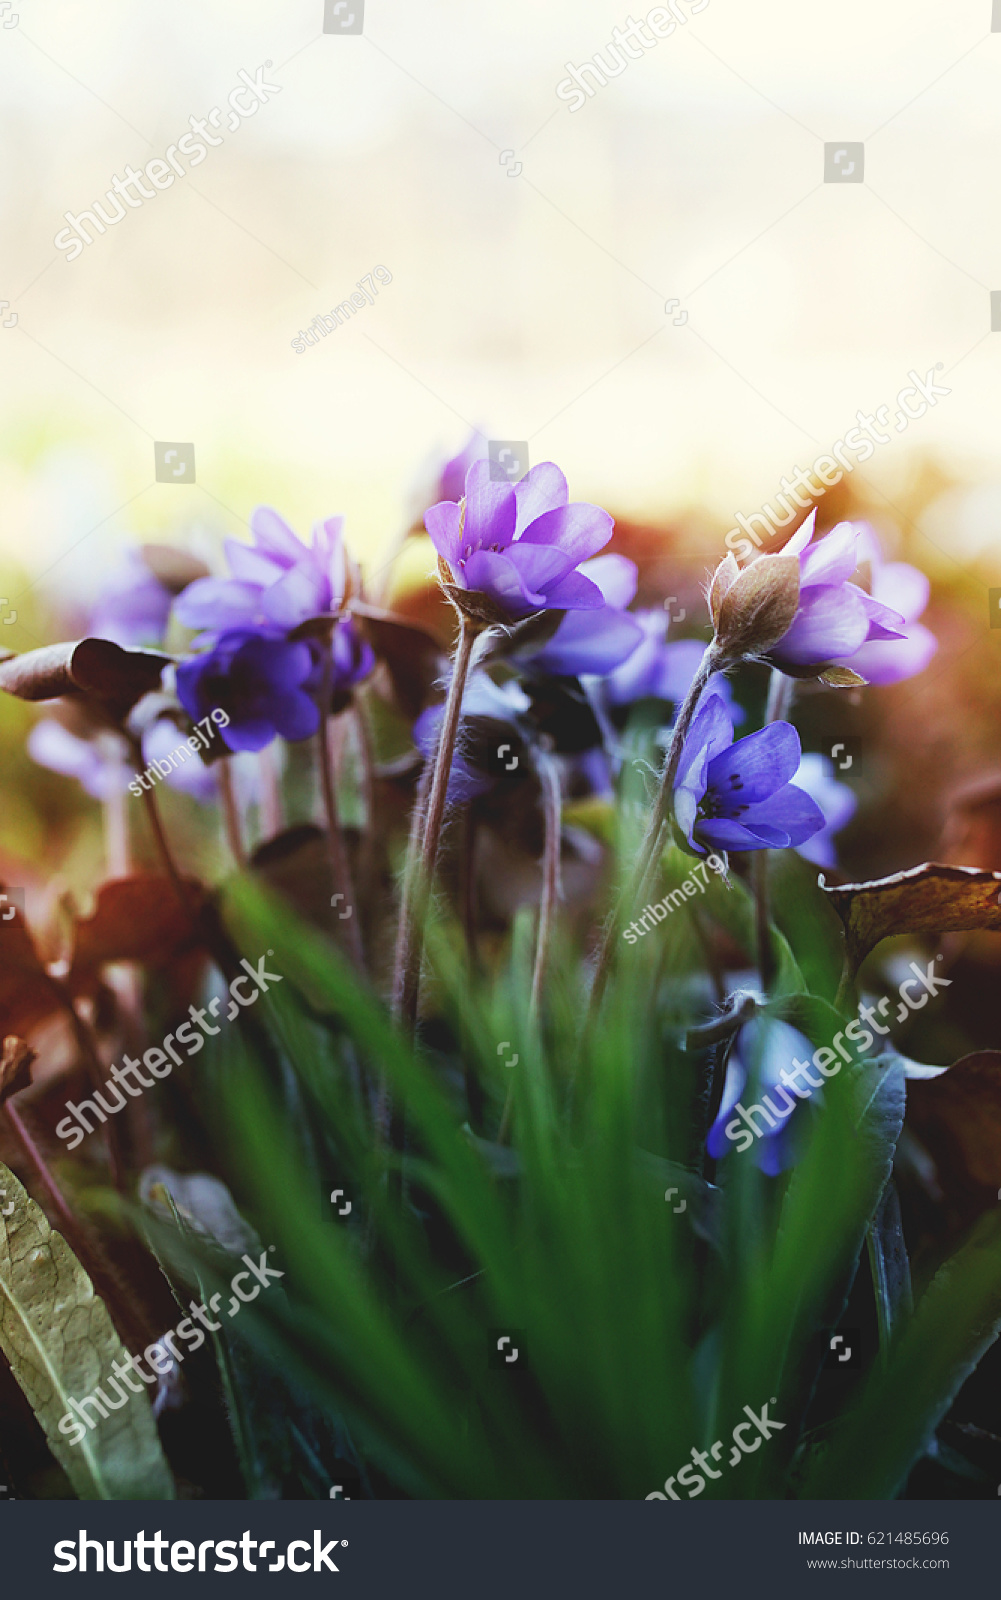 Spring image tiny blue purple spring stock photo edit now spring image of tiny blue purple spring flowers in sun haze at the end of the izmirmasajfo